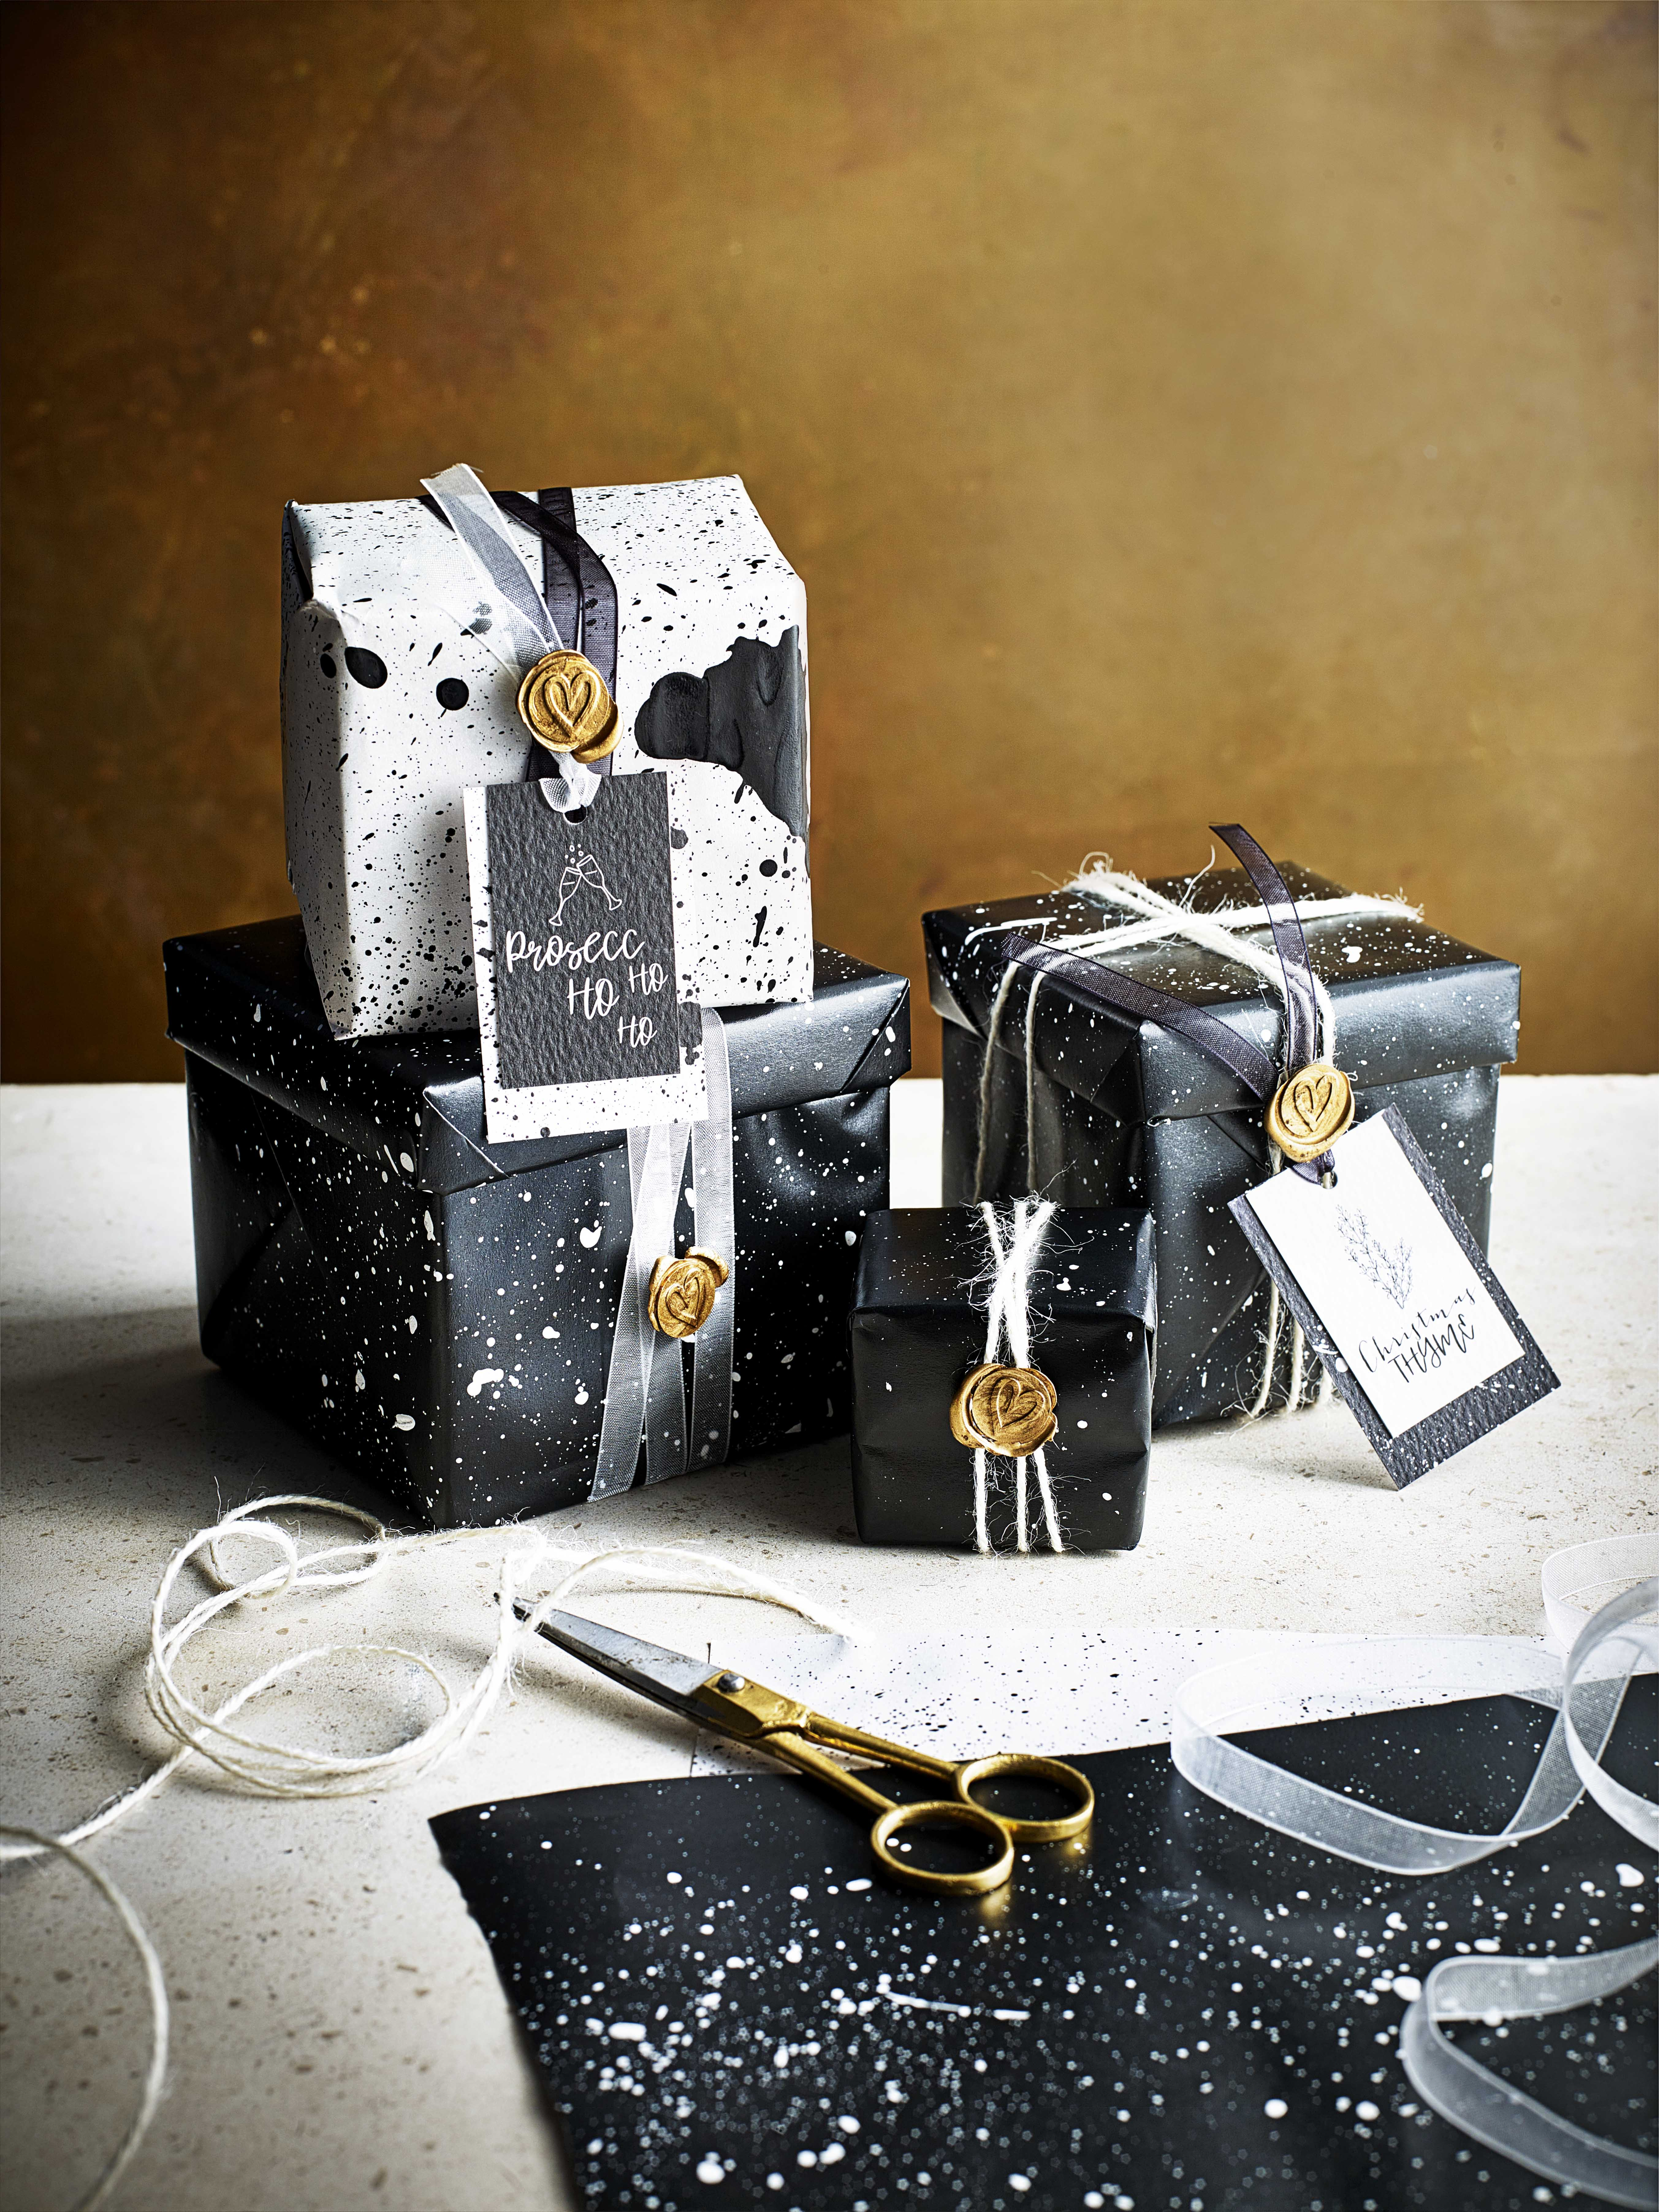 Homemade Wrapping Paper Ideas For Christmas